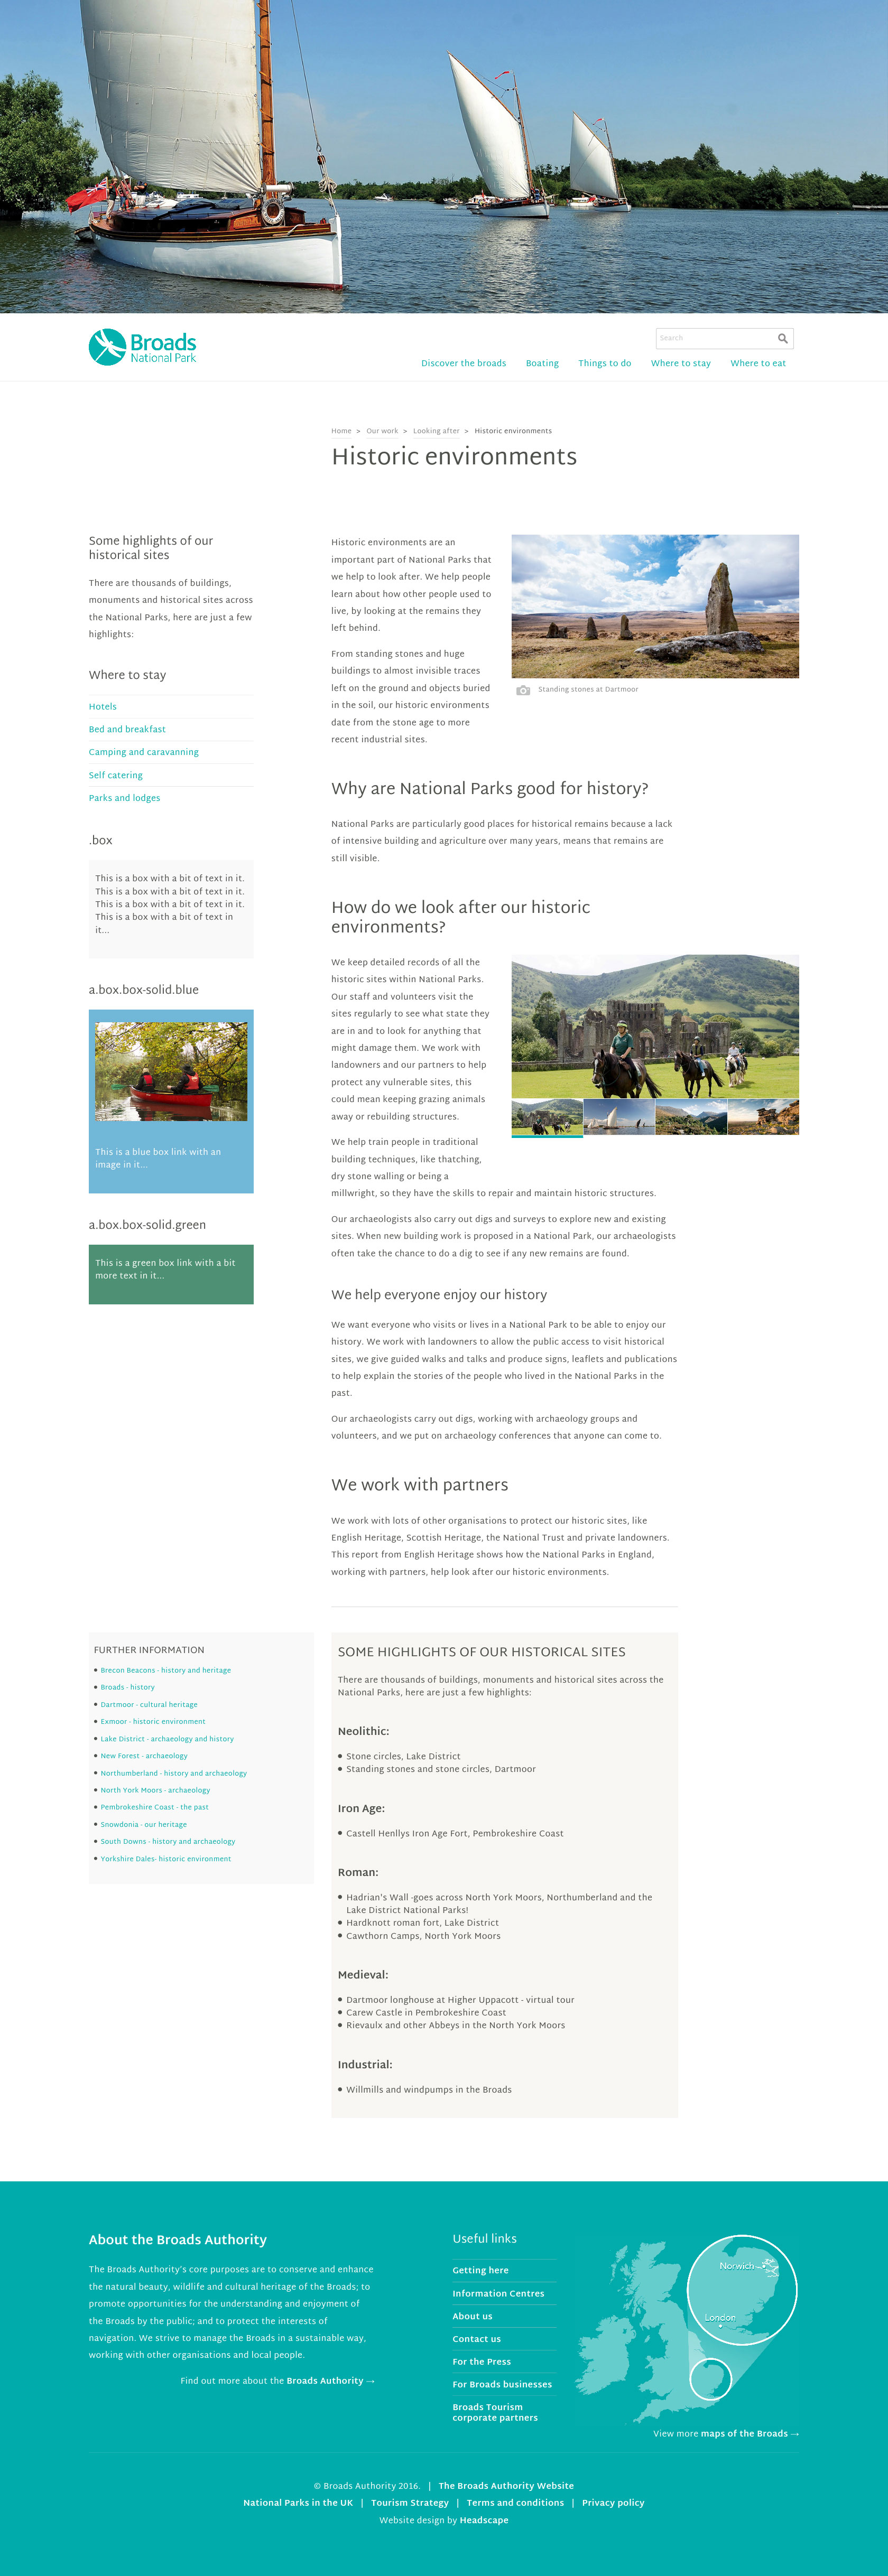 Broads National Park - Website design